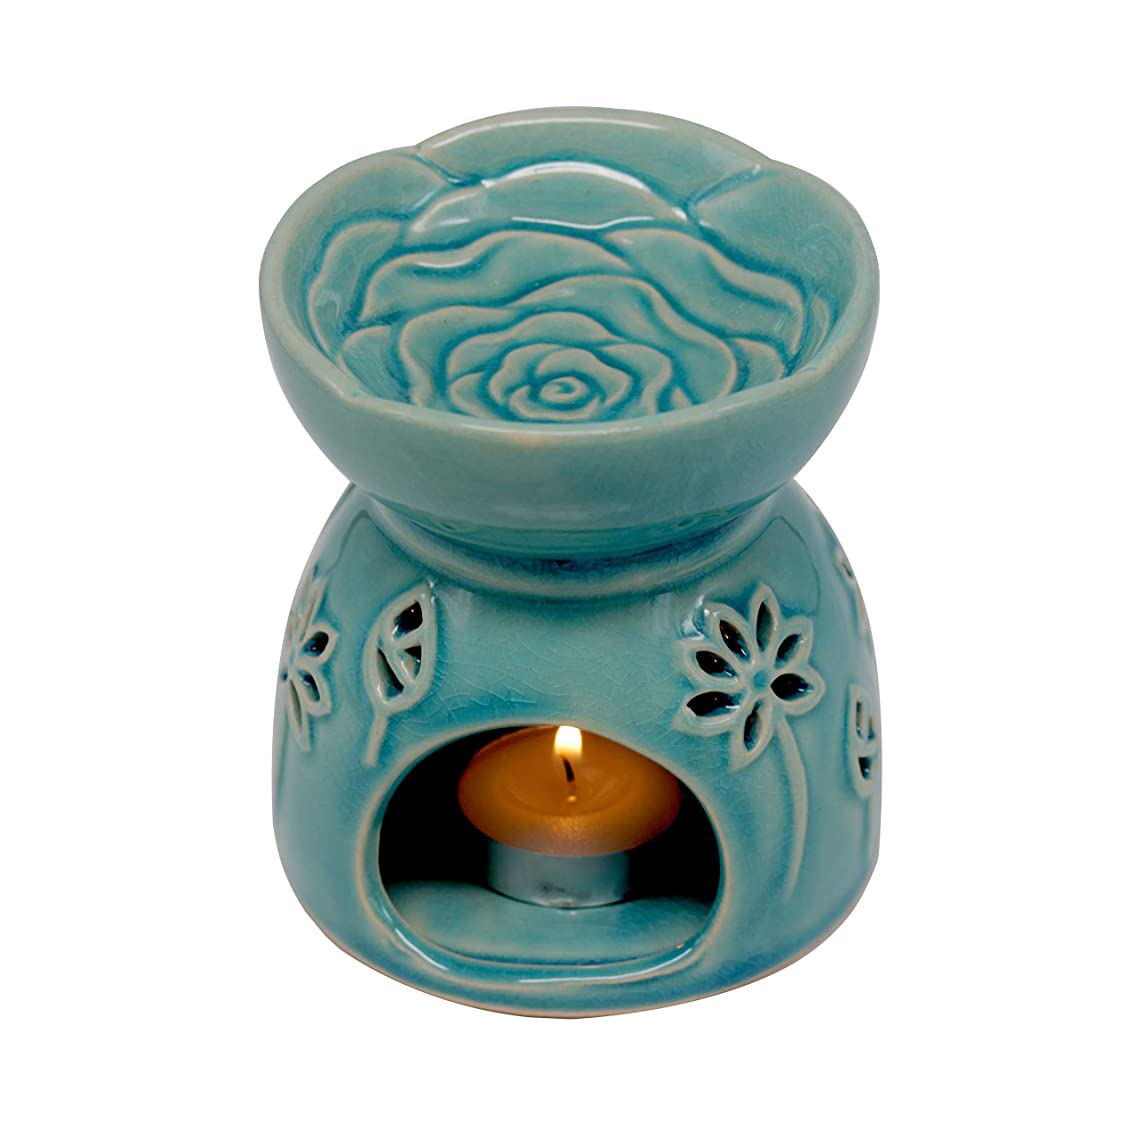 DELIWAY Ceramic Tea Light Holder/Wax Melt Warmer, Great Essential Oil Burner Aromatherapy Diffuser for Living Room, Balcony, Spa Yaga Meditation (Blue, 80ML) qb703259531918